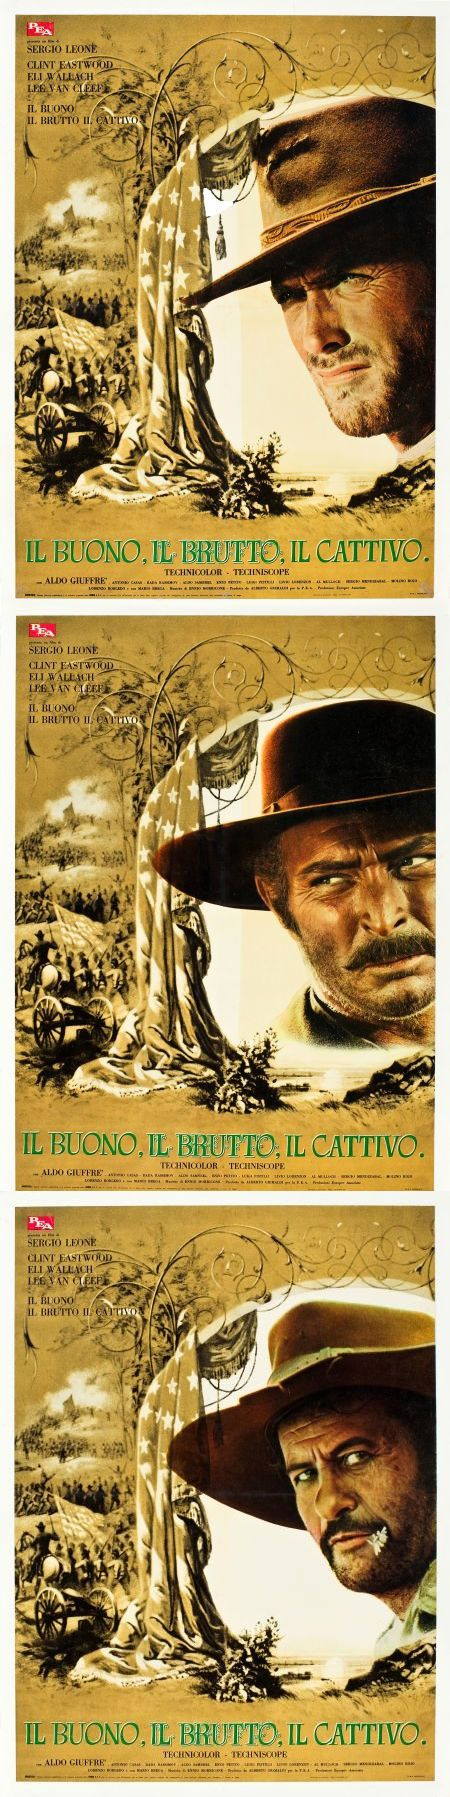 191 best the good the bad and the ugly images on pinterest